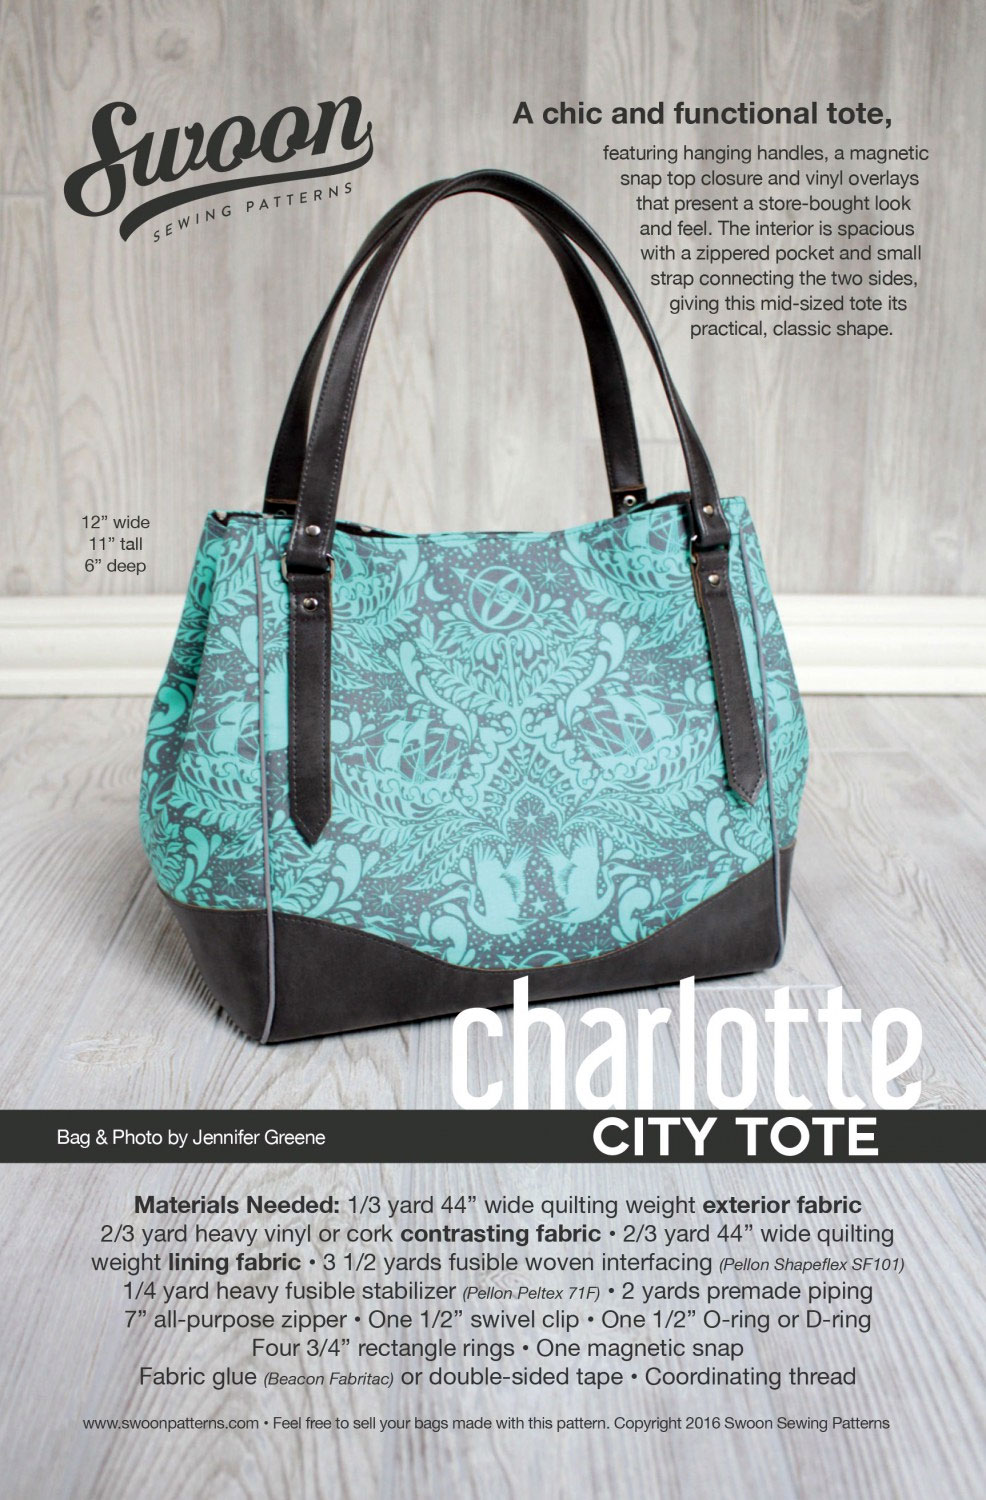 Charlotte City Tote Sewing Pattern From